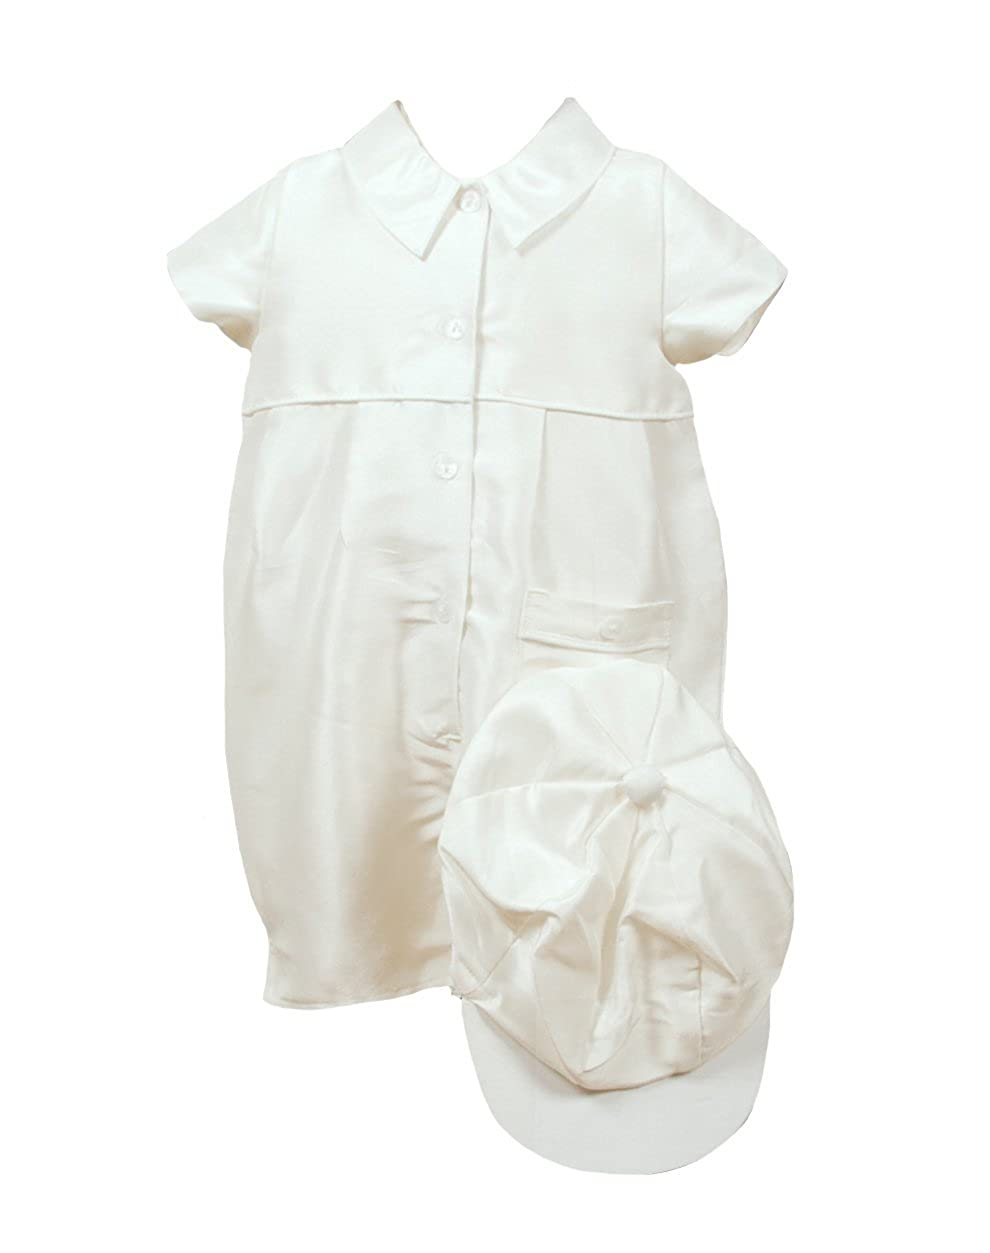 Heritage \'Caine\' Silk Christening Romper With Matching Cap 3 to 6 Months Heritage Christening - Mini Vanilla Ltd Caine S 36